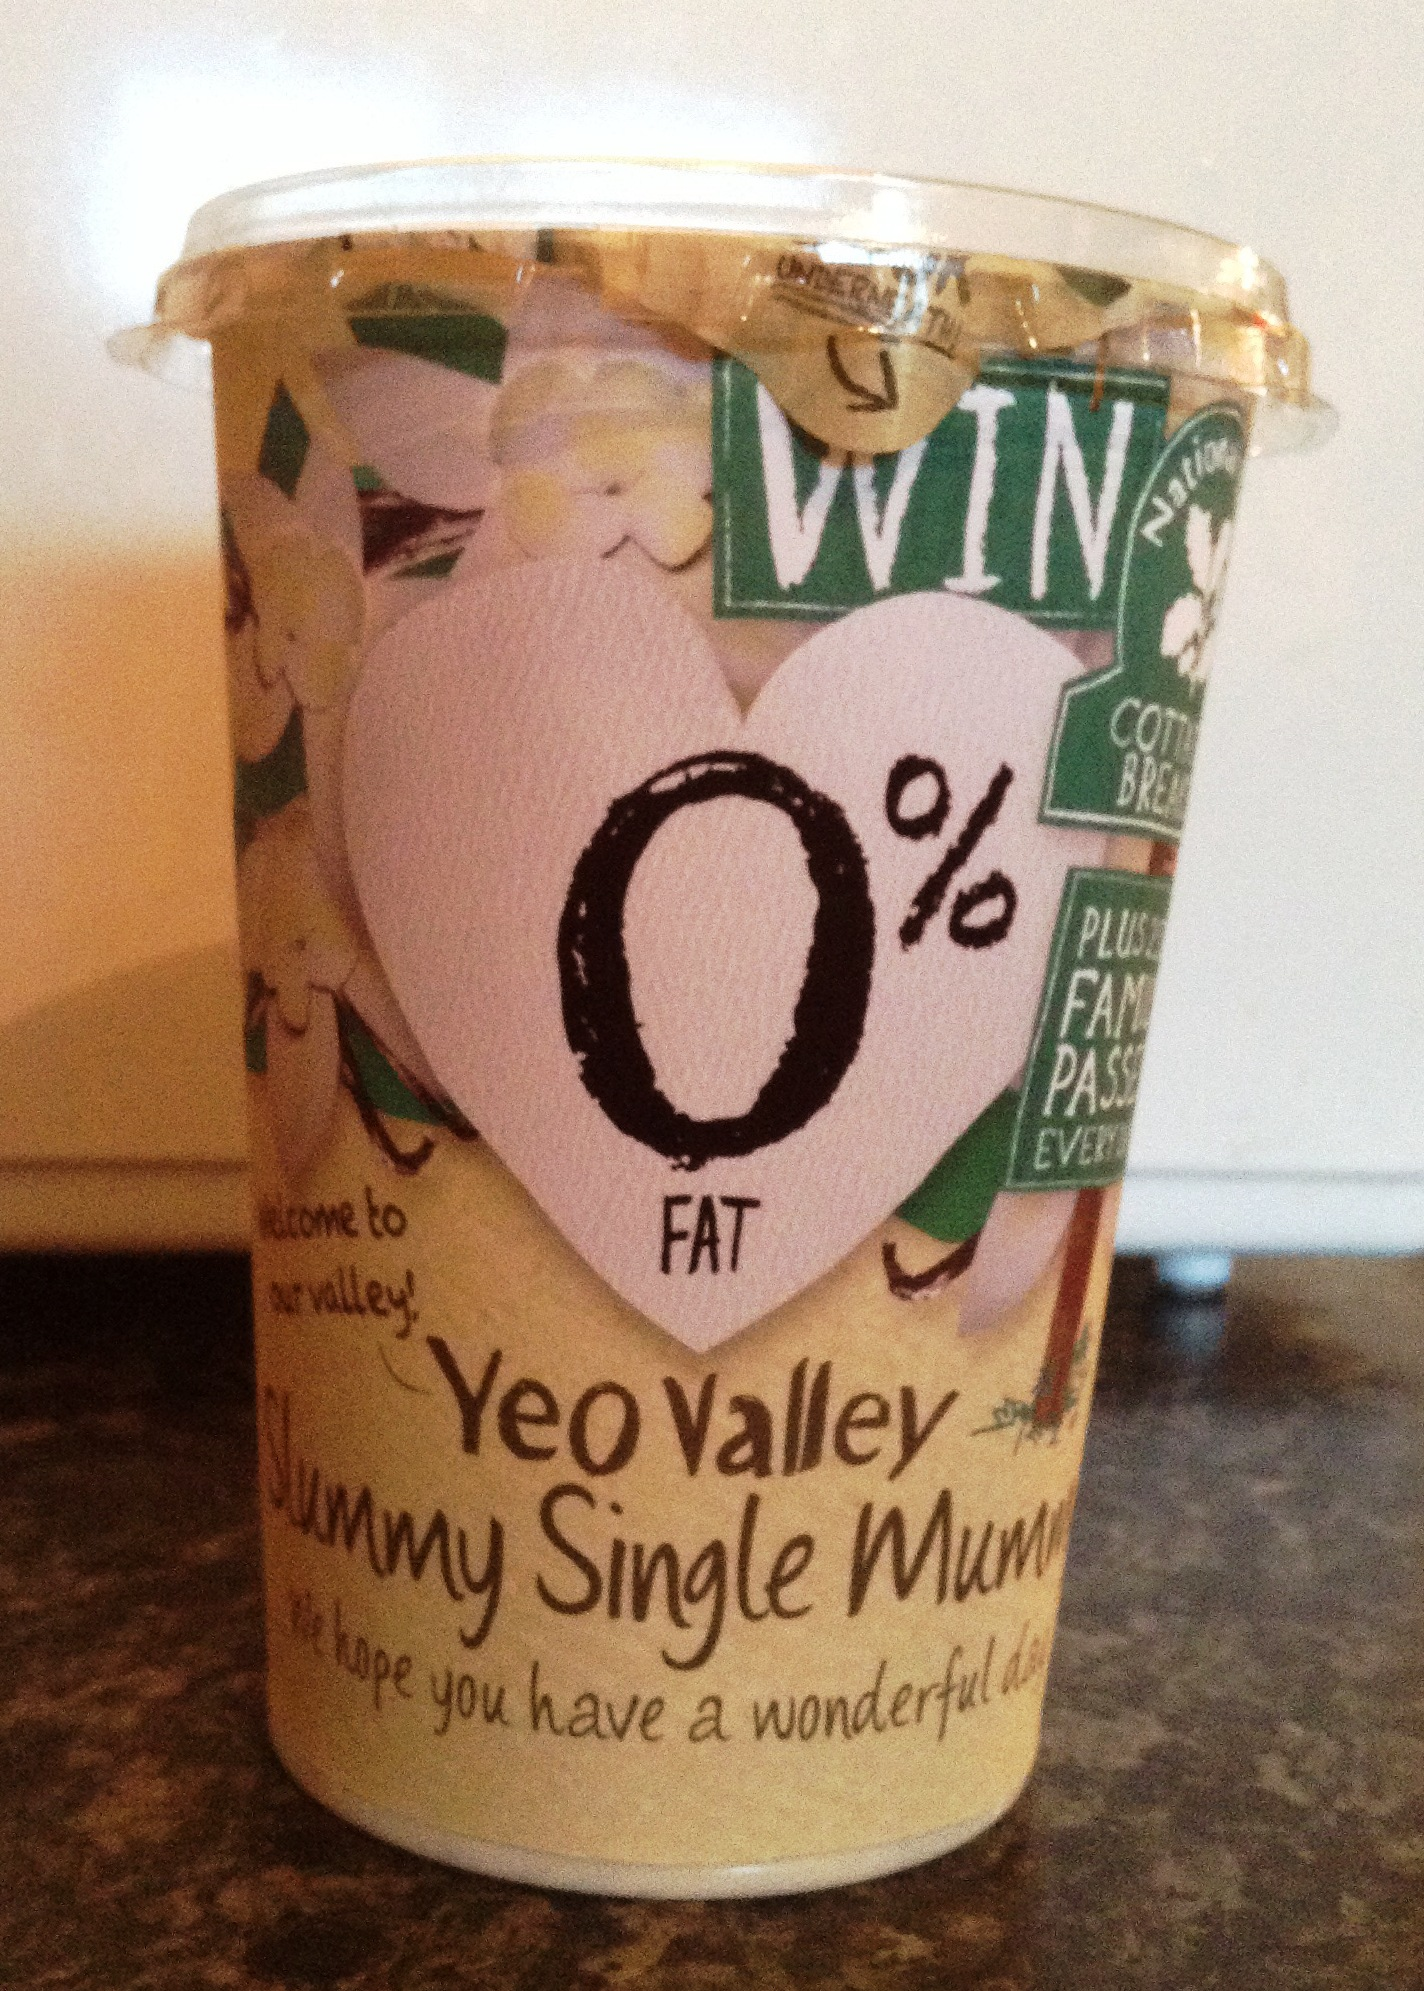 Yeo Valley yogurt